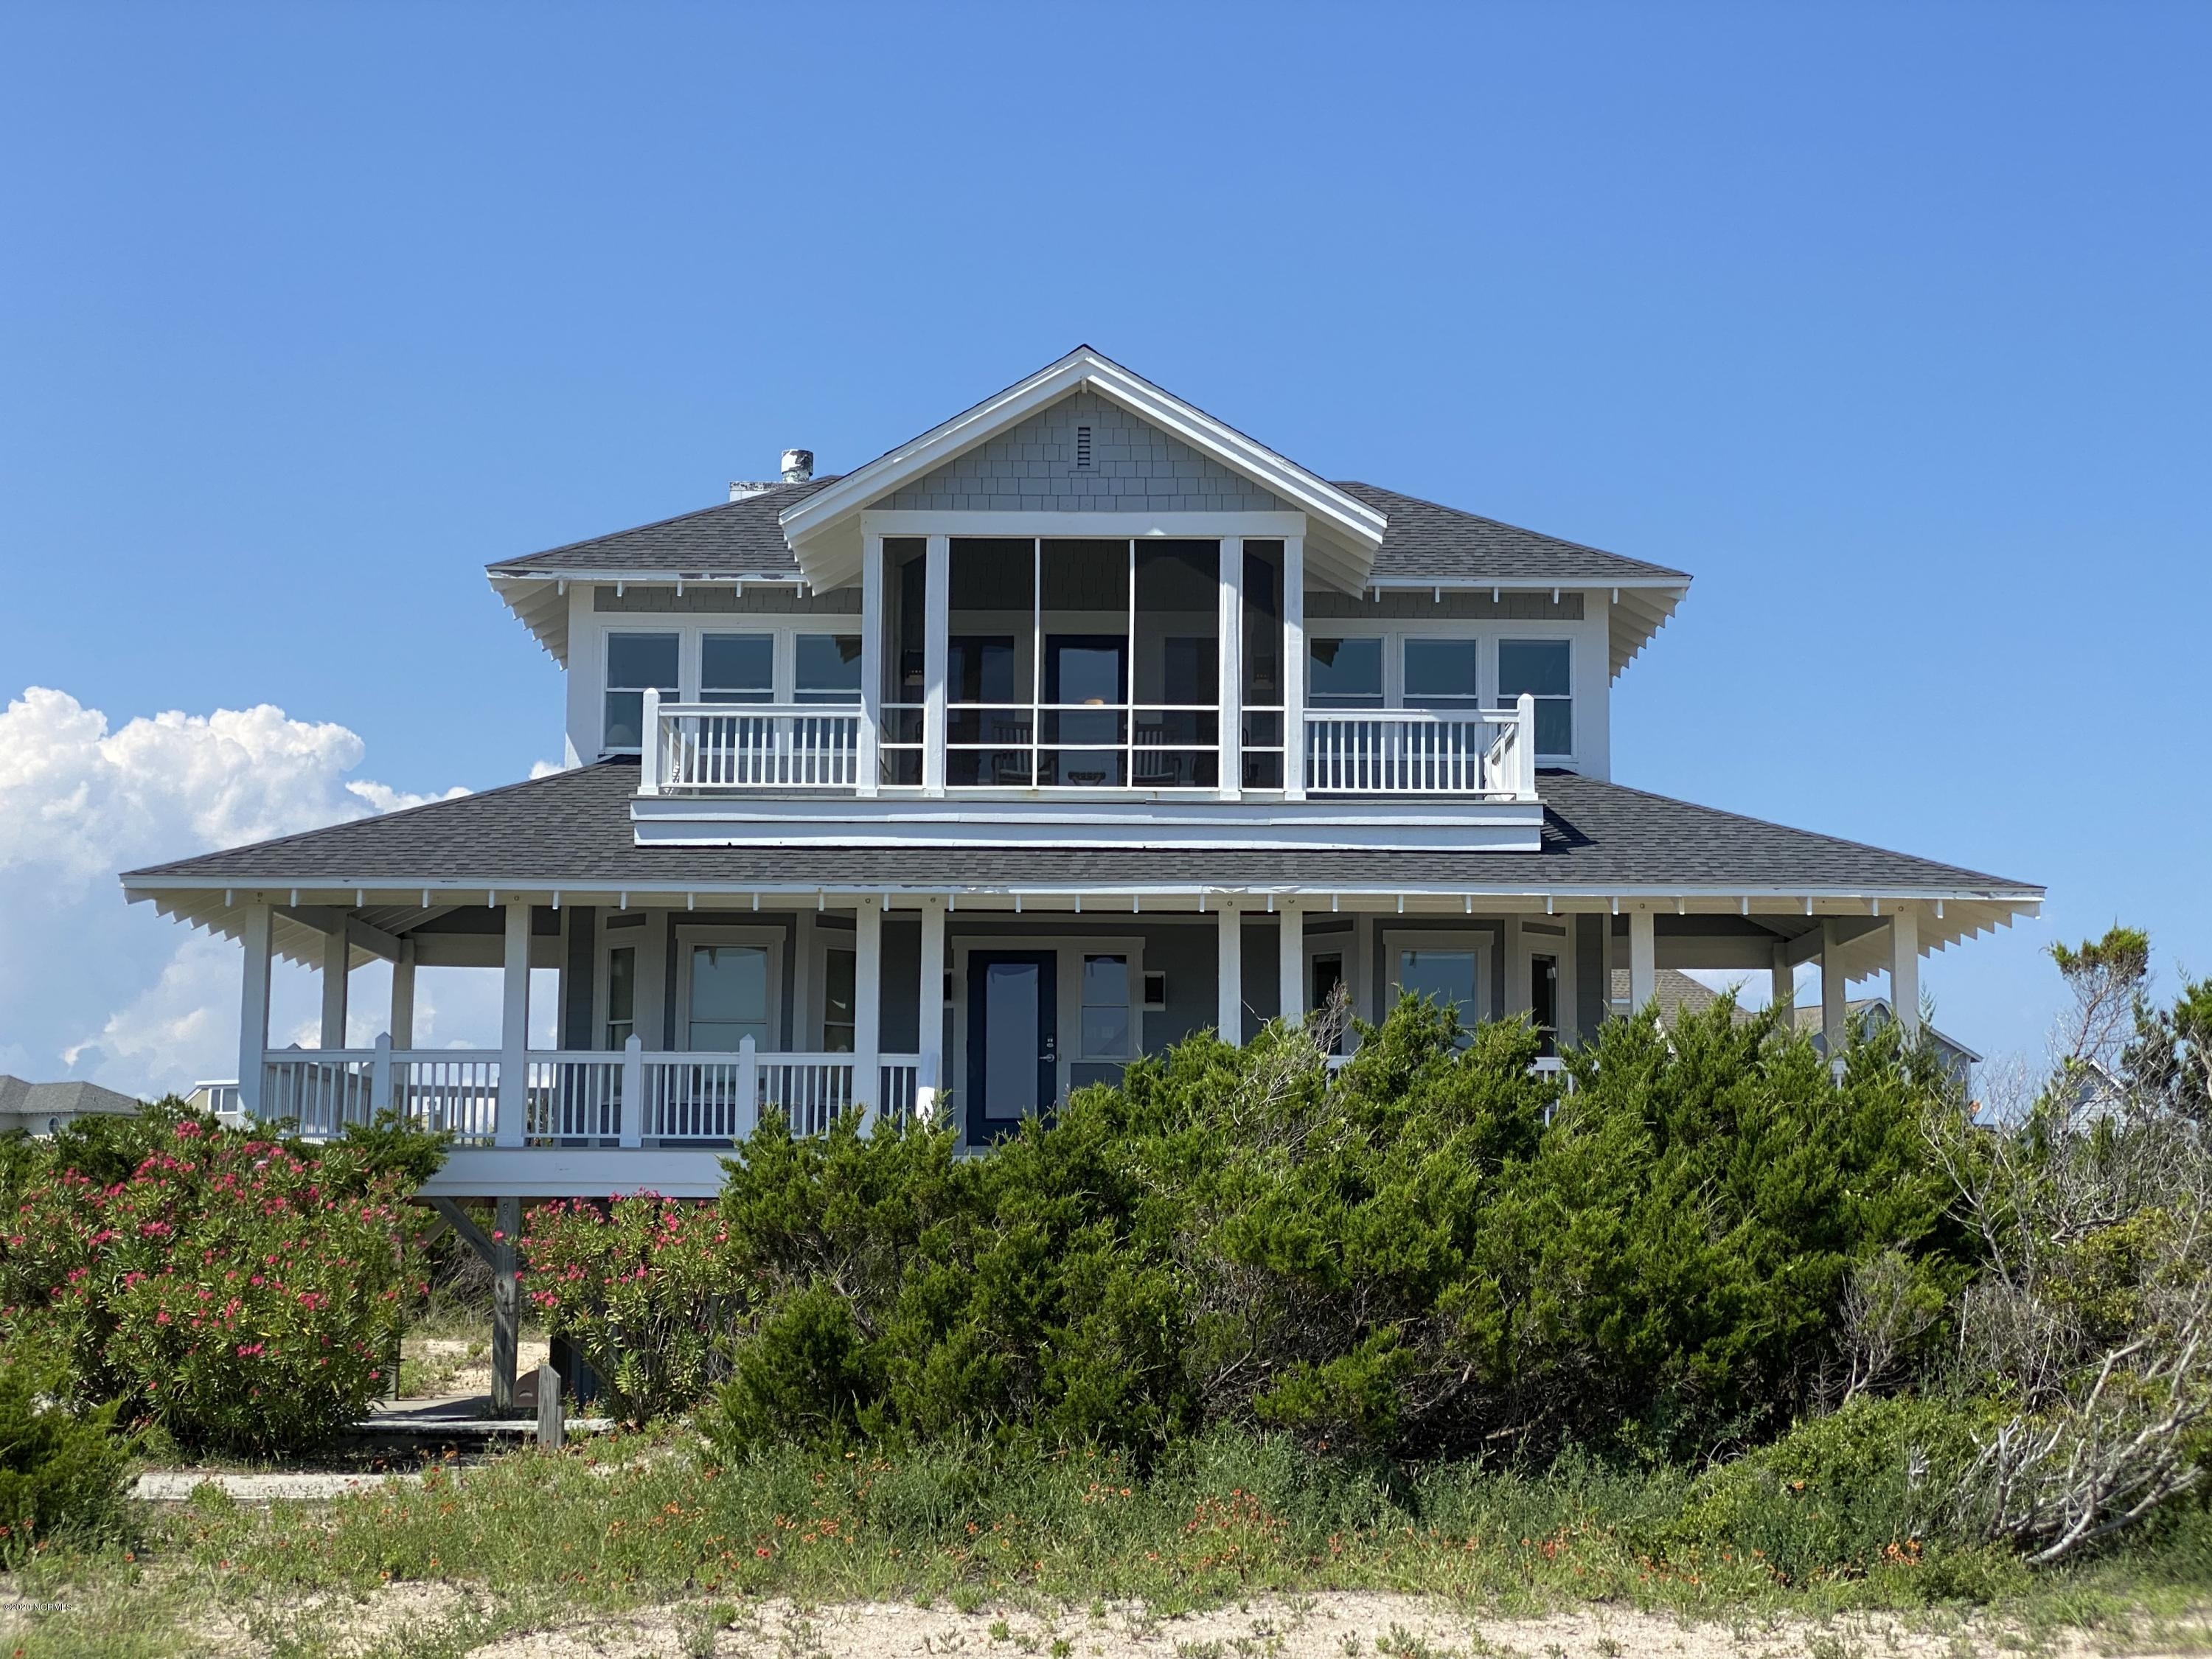 345 Bald Head Wynd, Bald Head Island, North Carolina 28461, 4 Bedrooms Bedrooms, 5 Rooms Rooms,3 BathroomsBathrooms,Single family residence,For sale,Bald Head Wynd,100227478